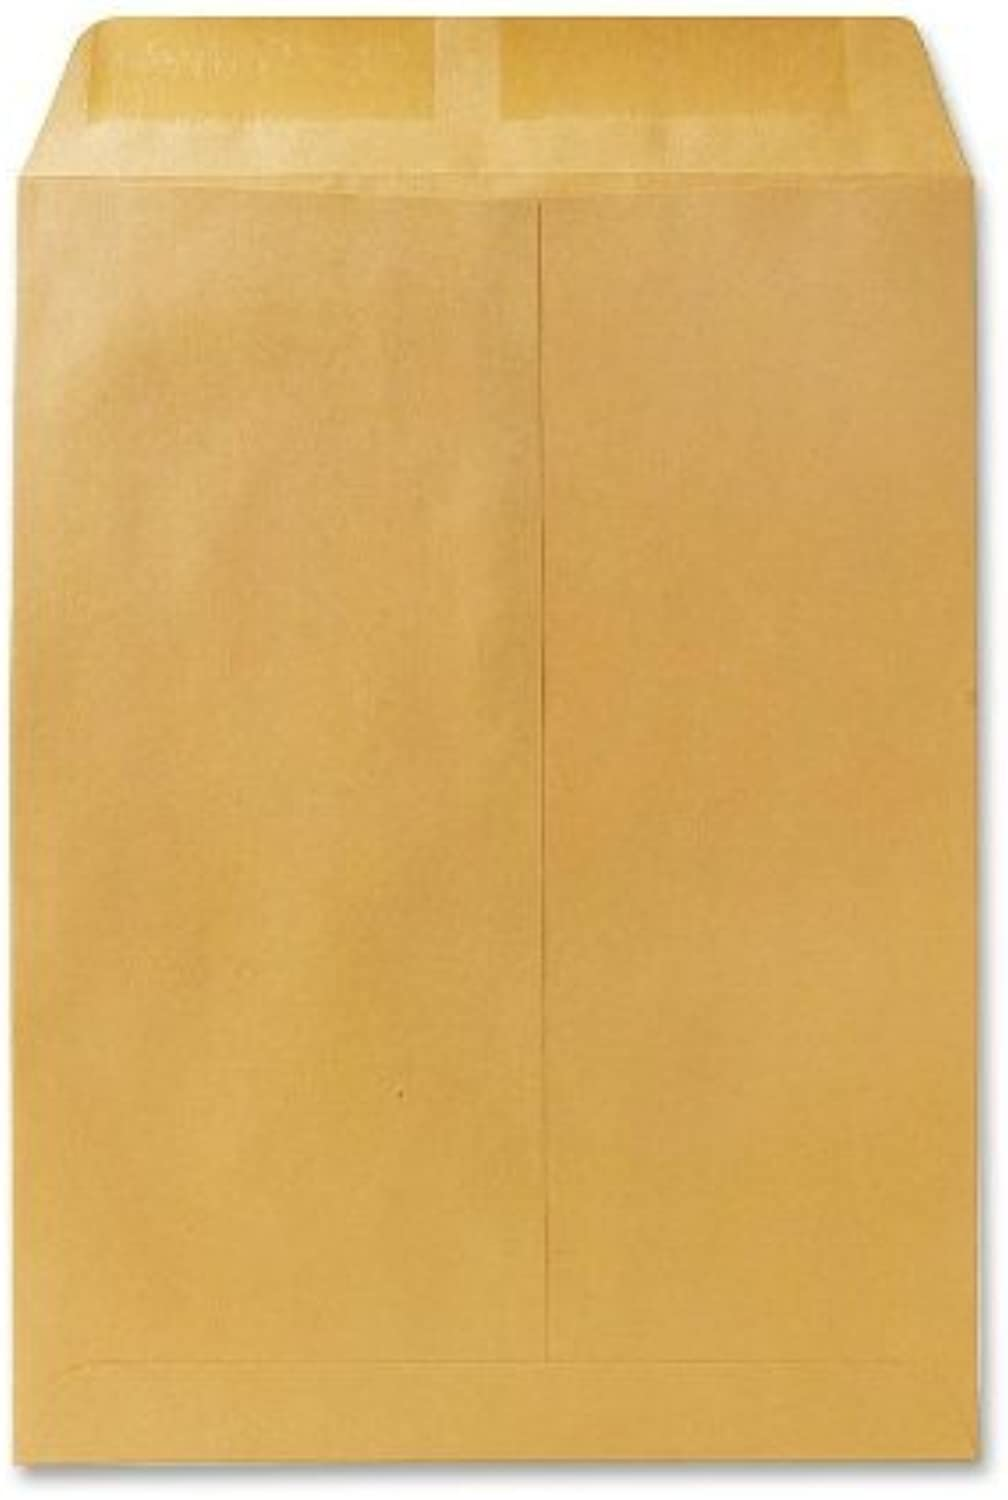 Quality Quality Quality Park Large Format Catalog Envelopes, 9 x 12 inches, Box of 250 (QUA41460) by Quality Park B0141M8Y8M | Großartig